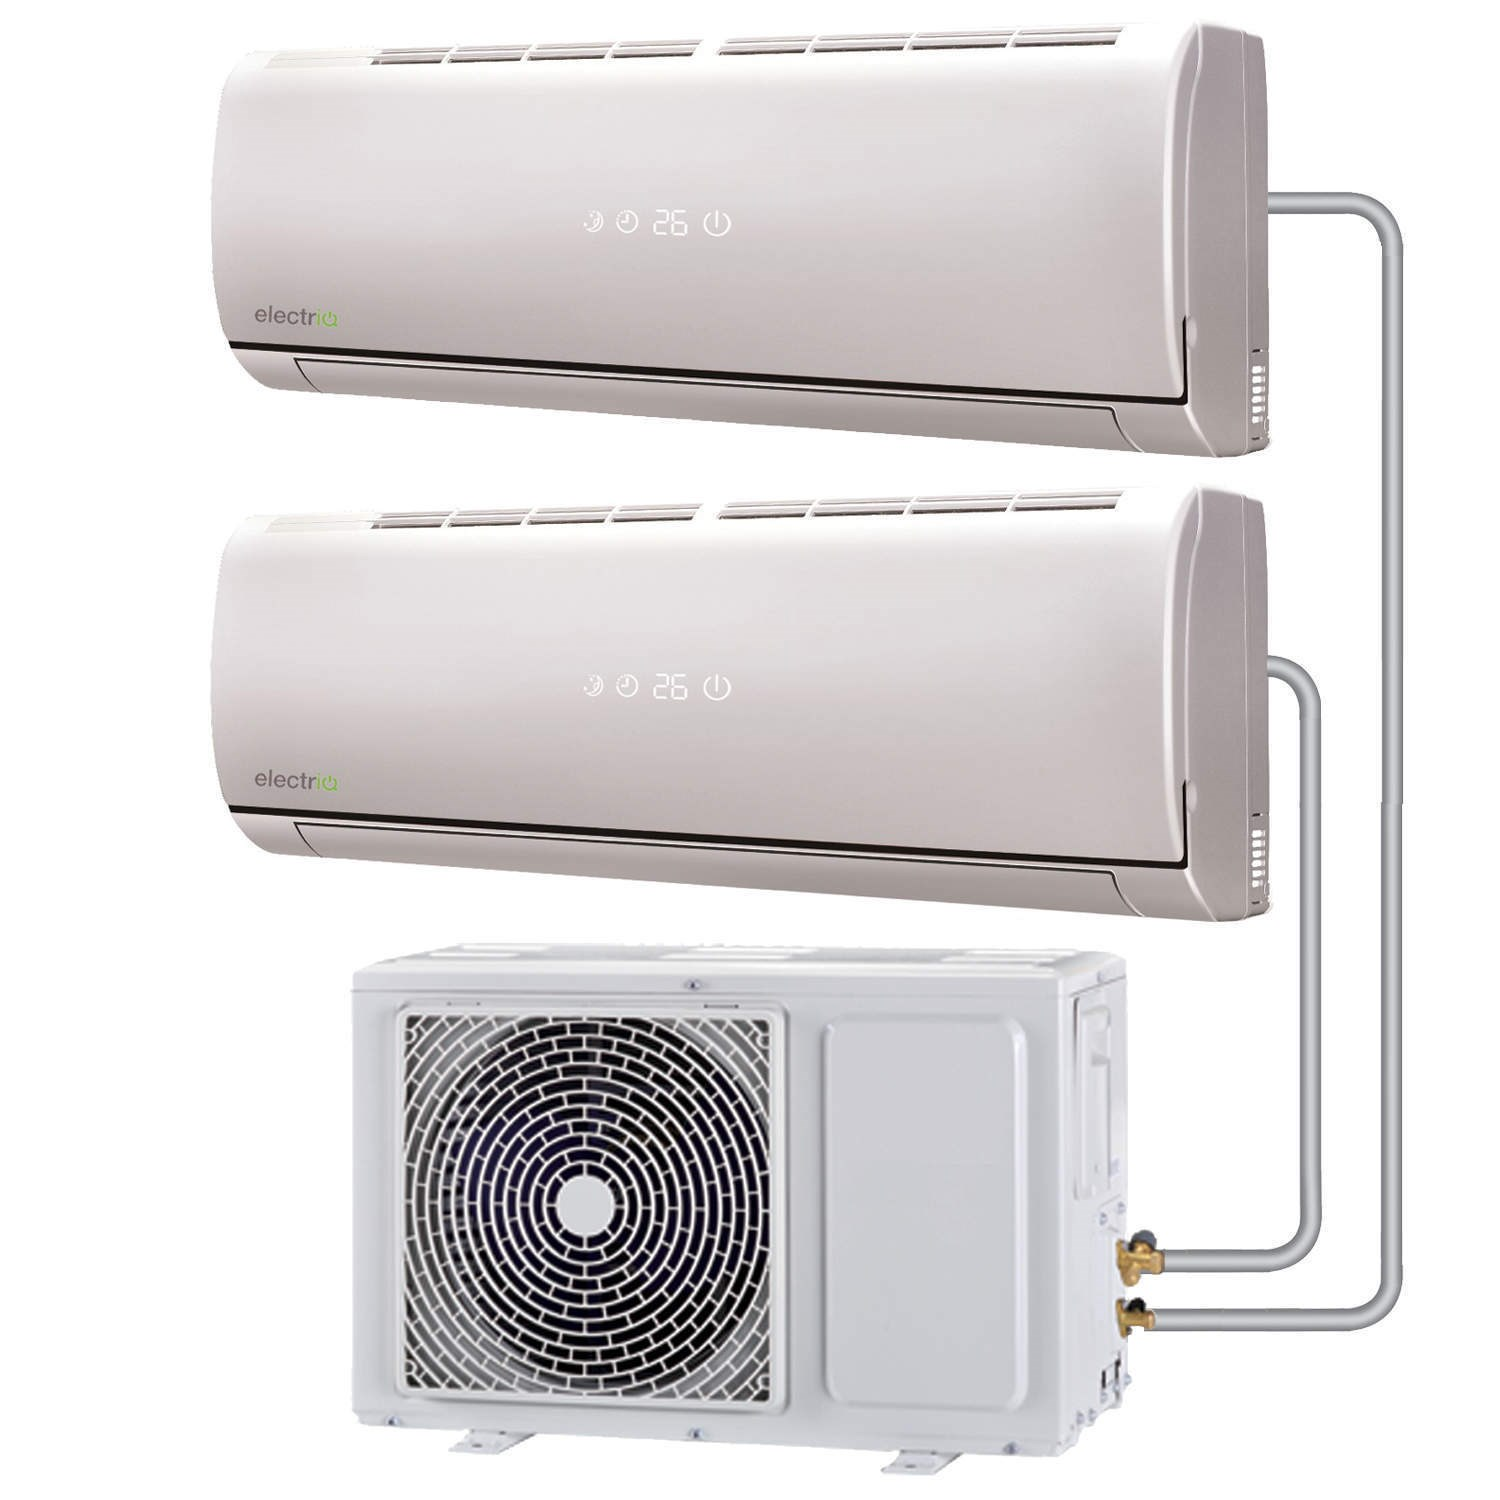 Multi split 18000 BTU Inverter Air Conditioner system with sin eiq  #70645B